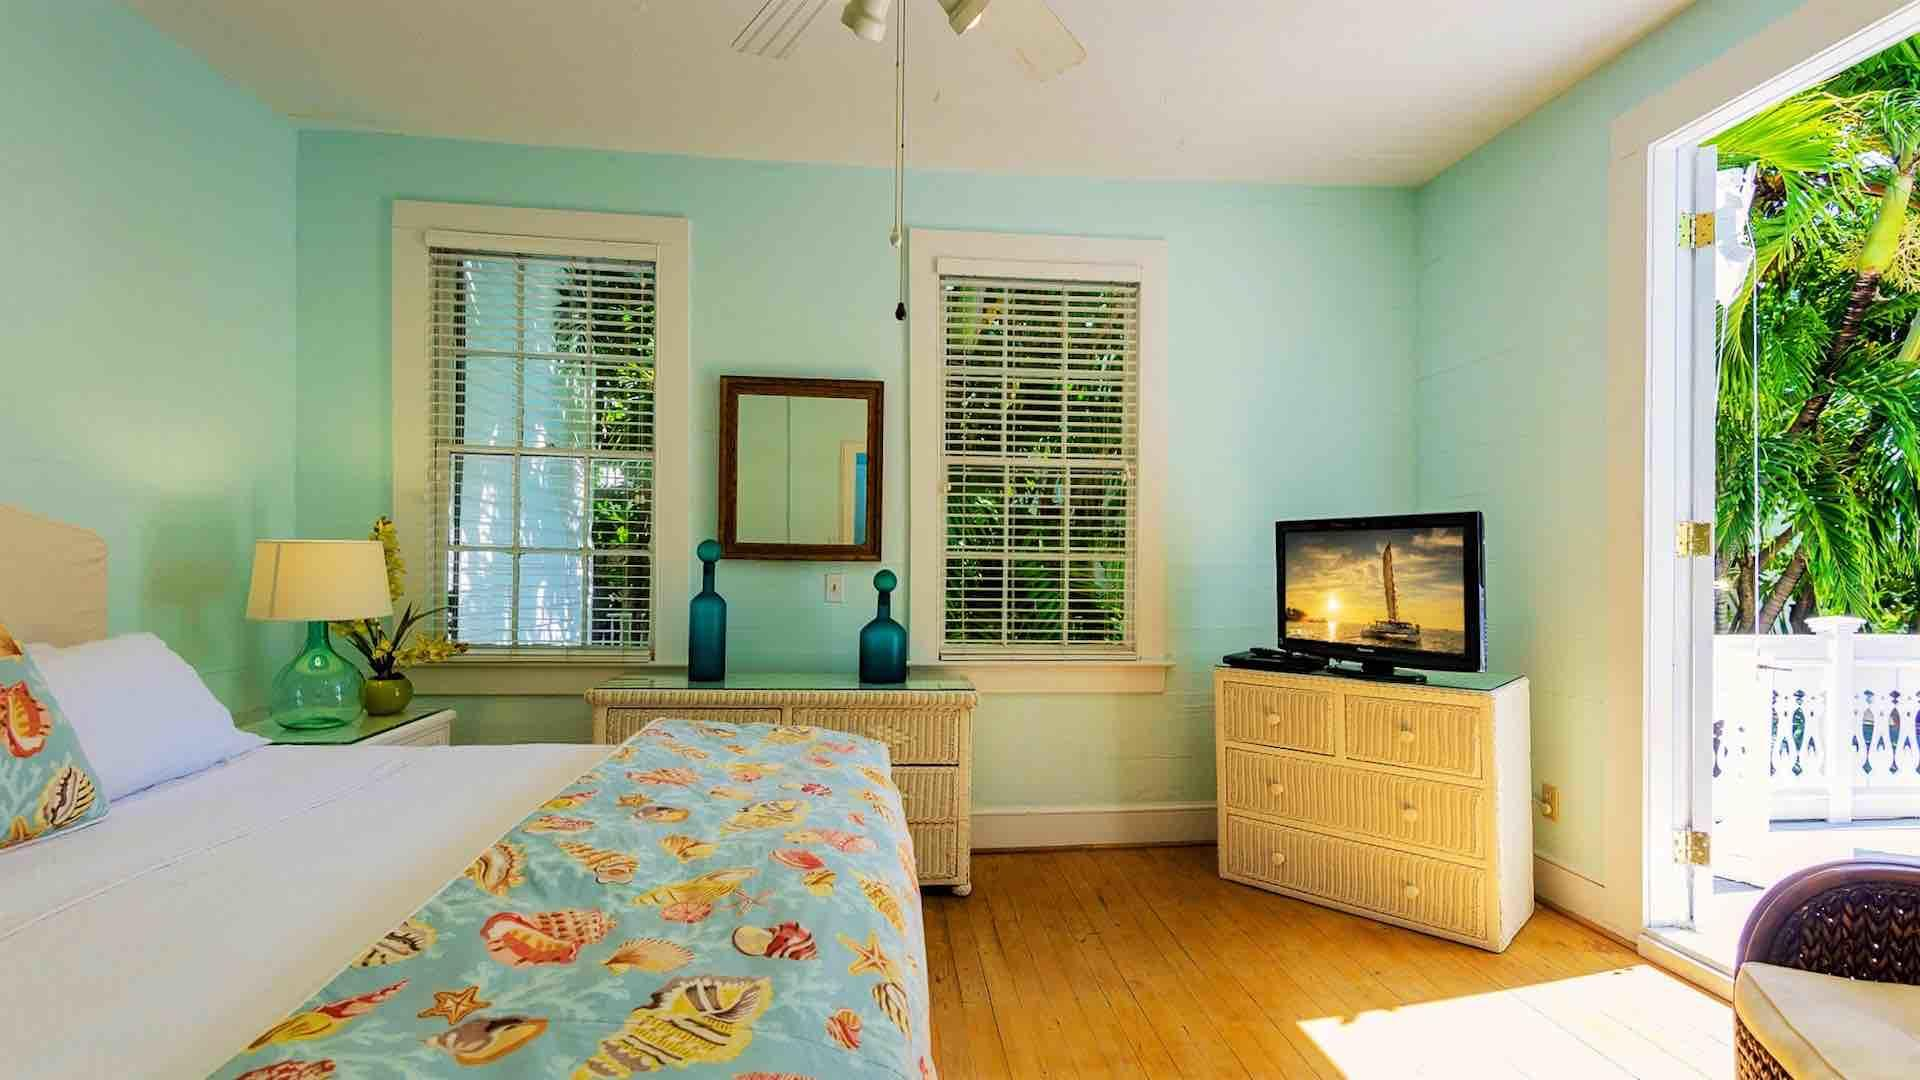 The second master suite has a king bed, overhead fan and flat screen TV.